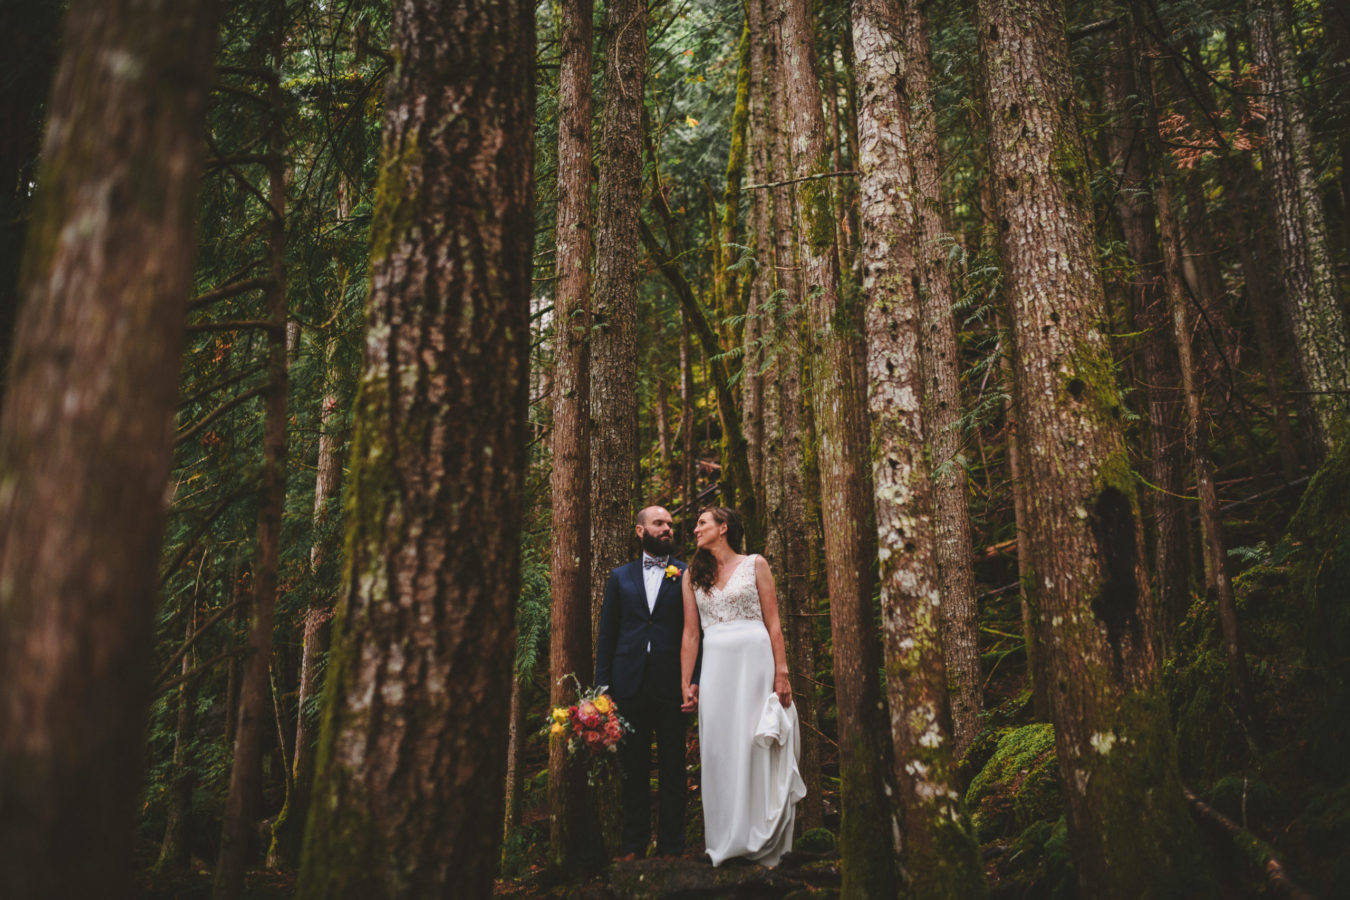 bride and groom holding hands and looking at each other amongst tall trees in the forest